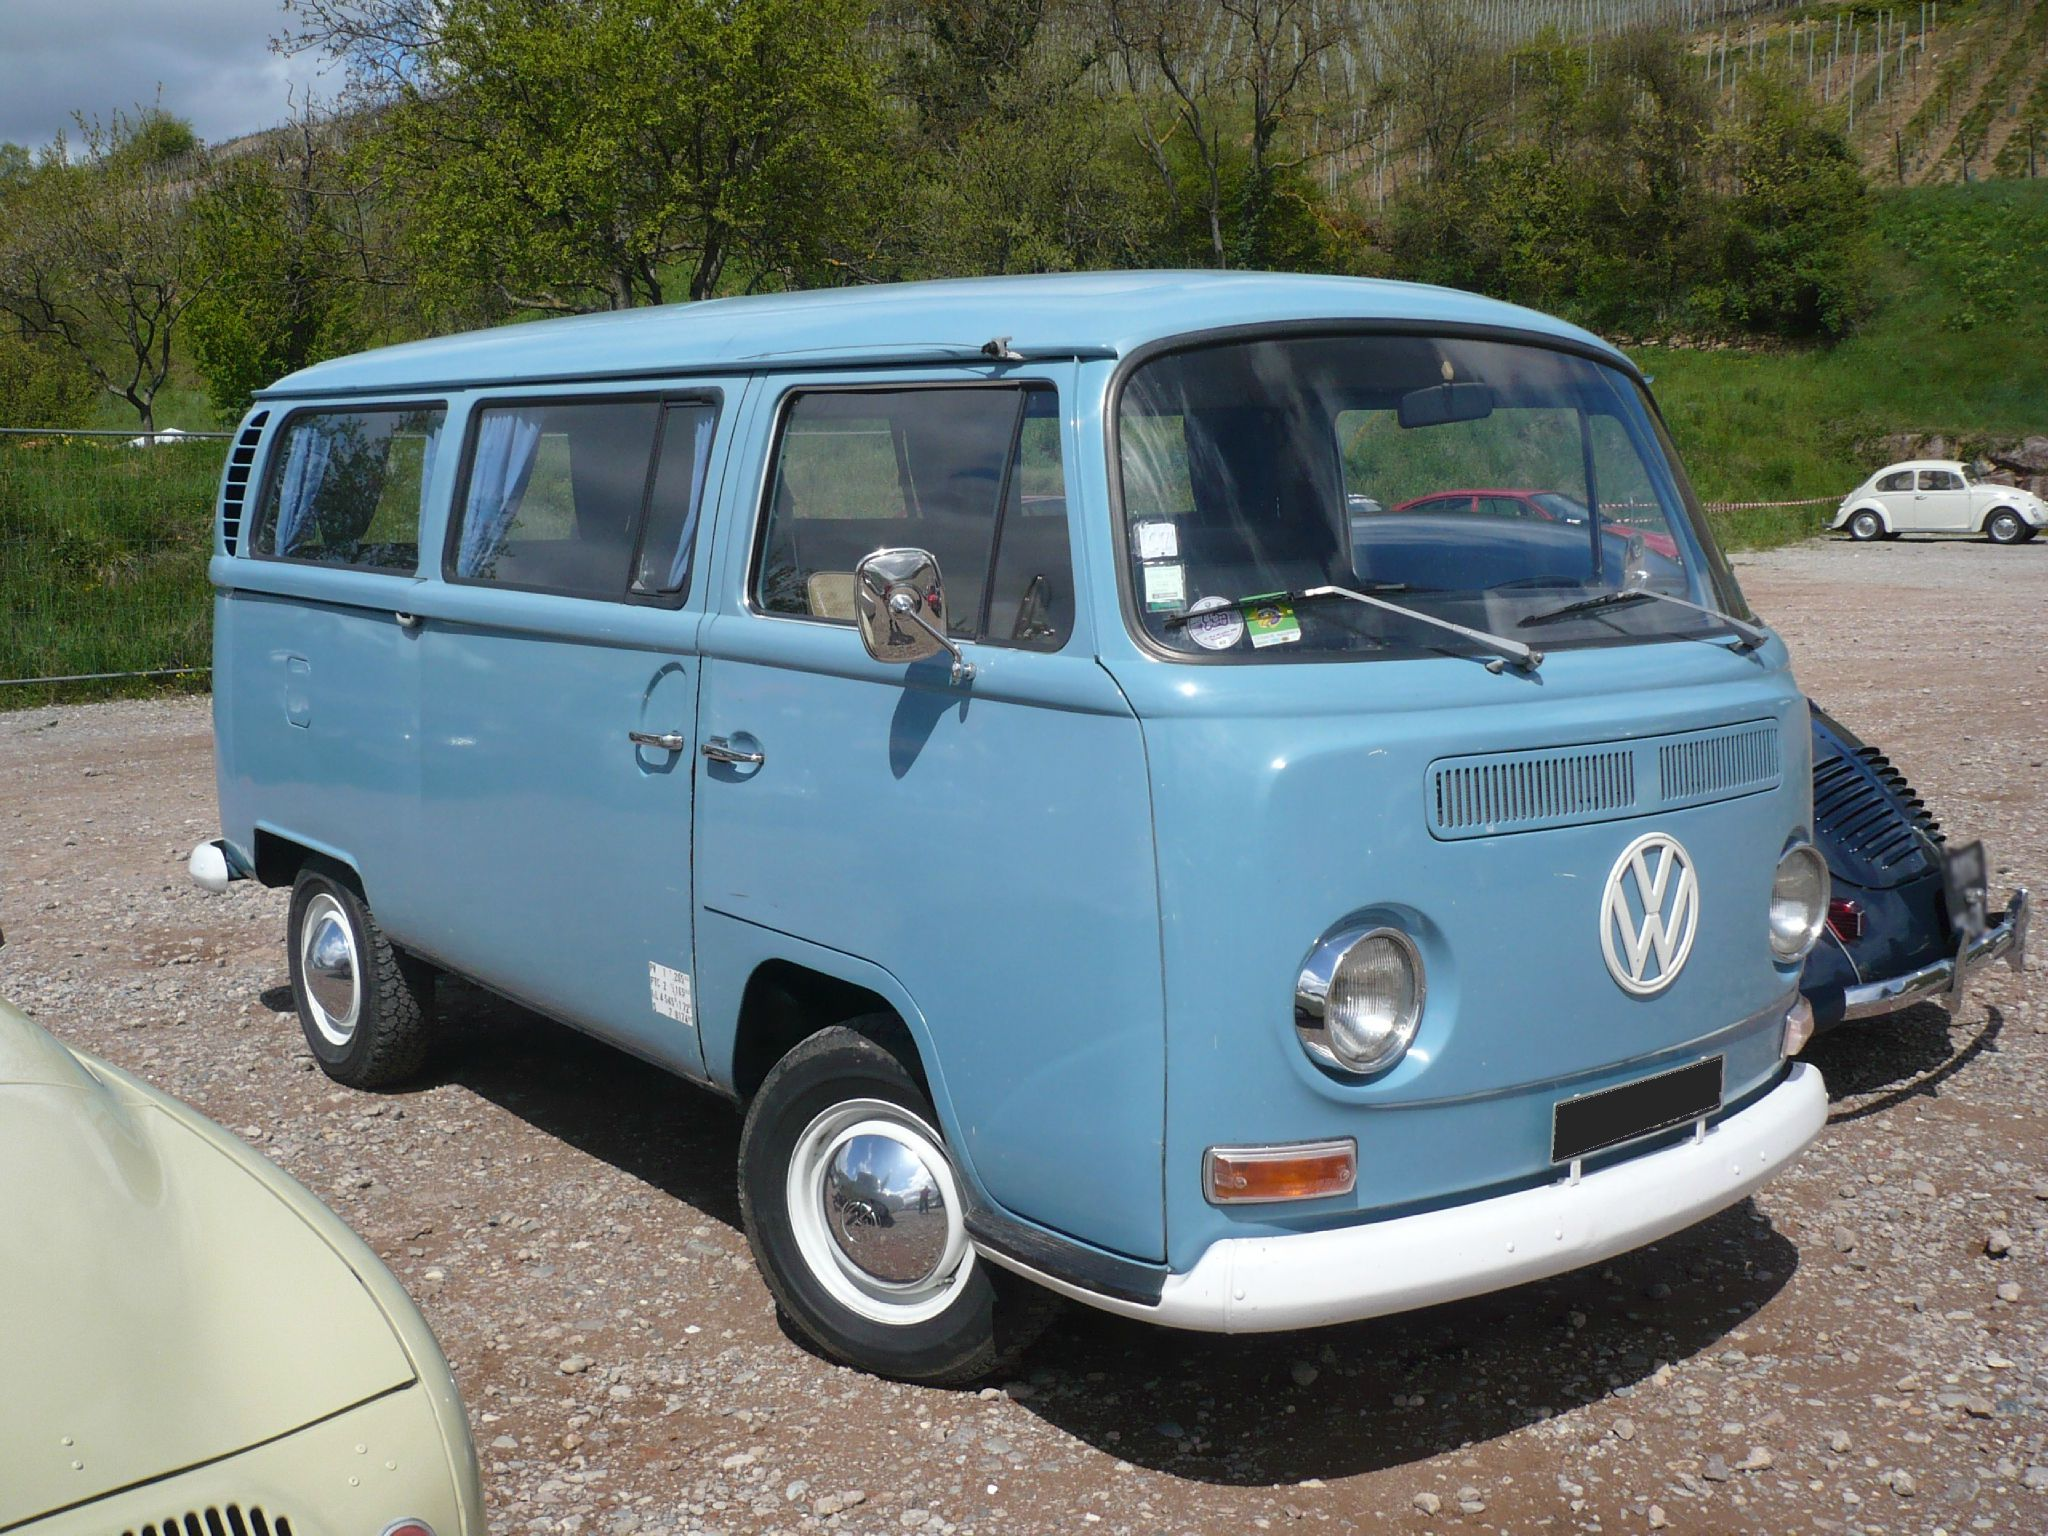 volkswagen combi type 2 van vroom vroom. Black Bedroom Furniture Sets. Home Design Ideas